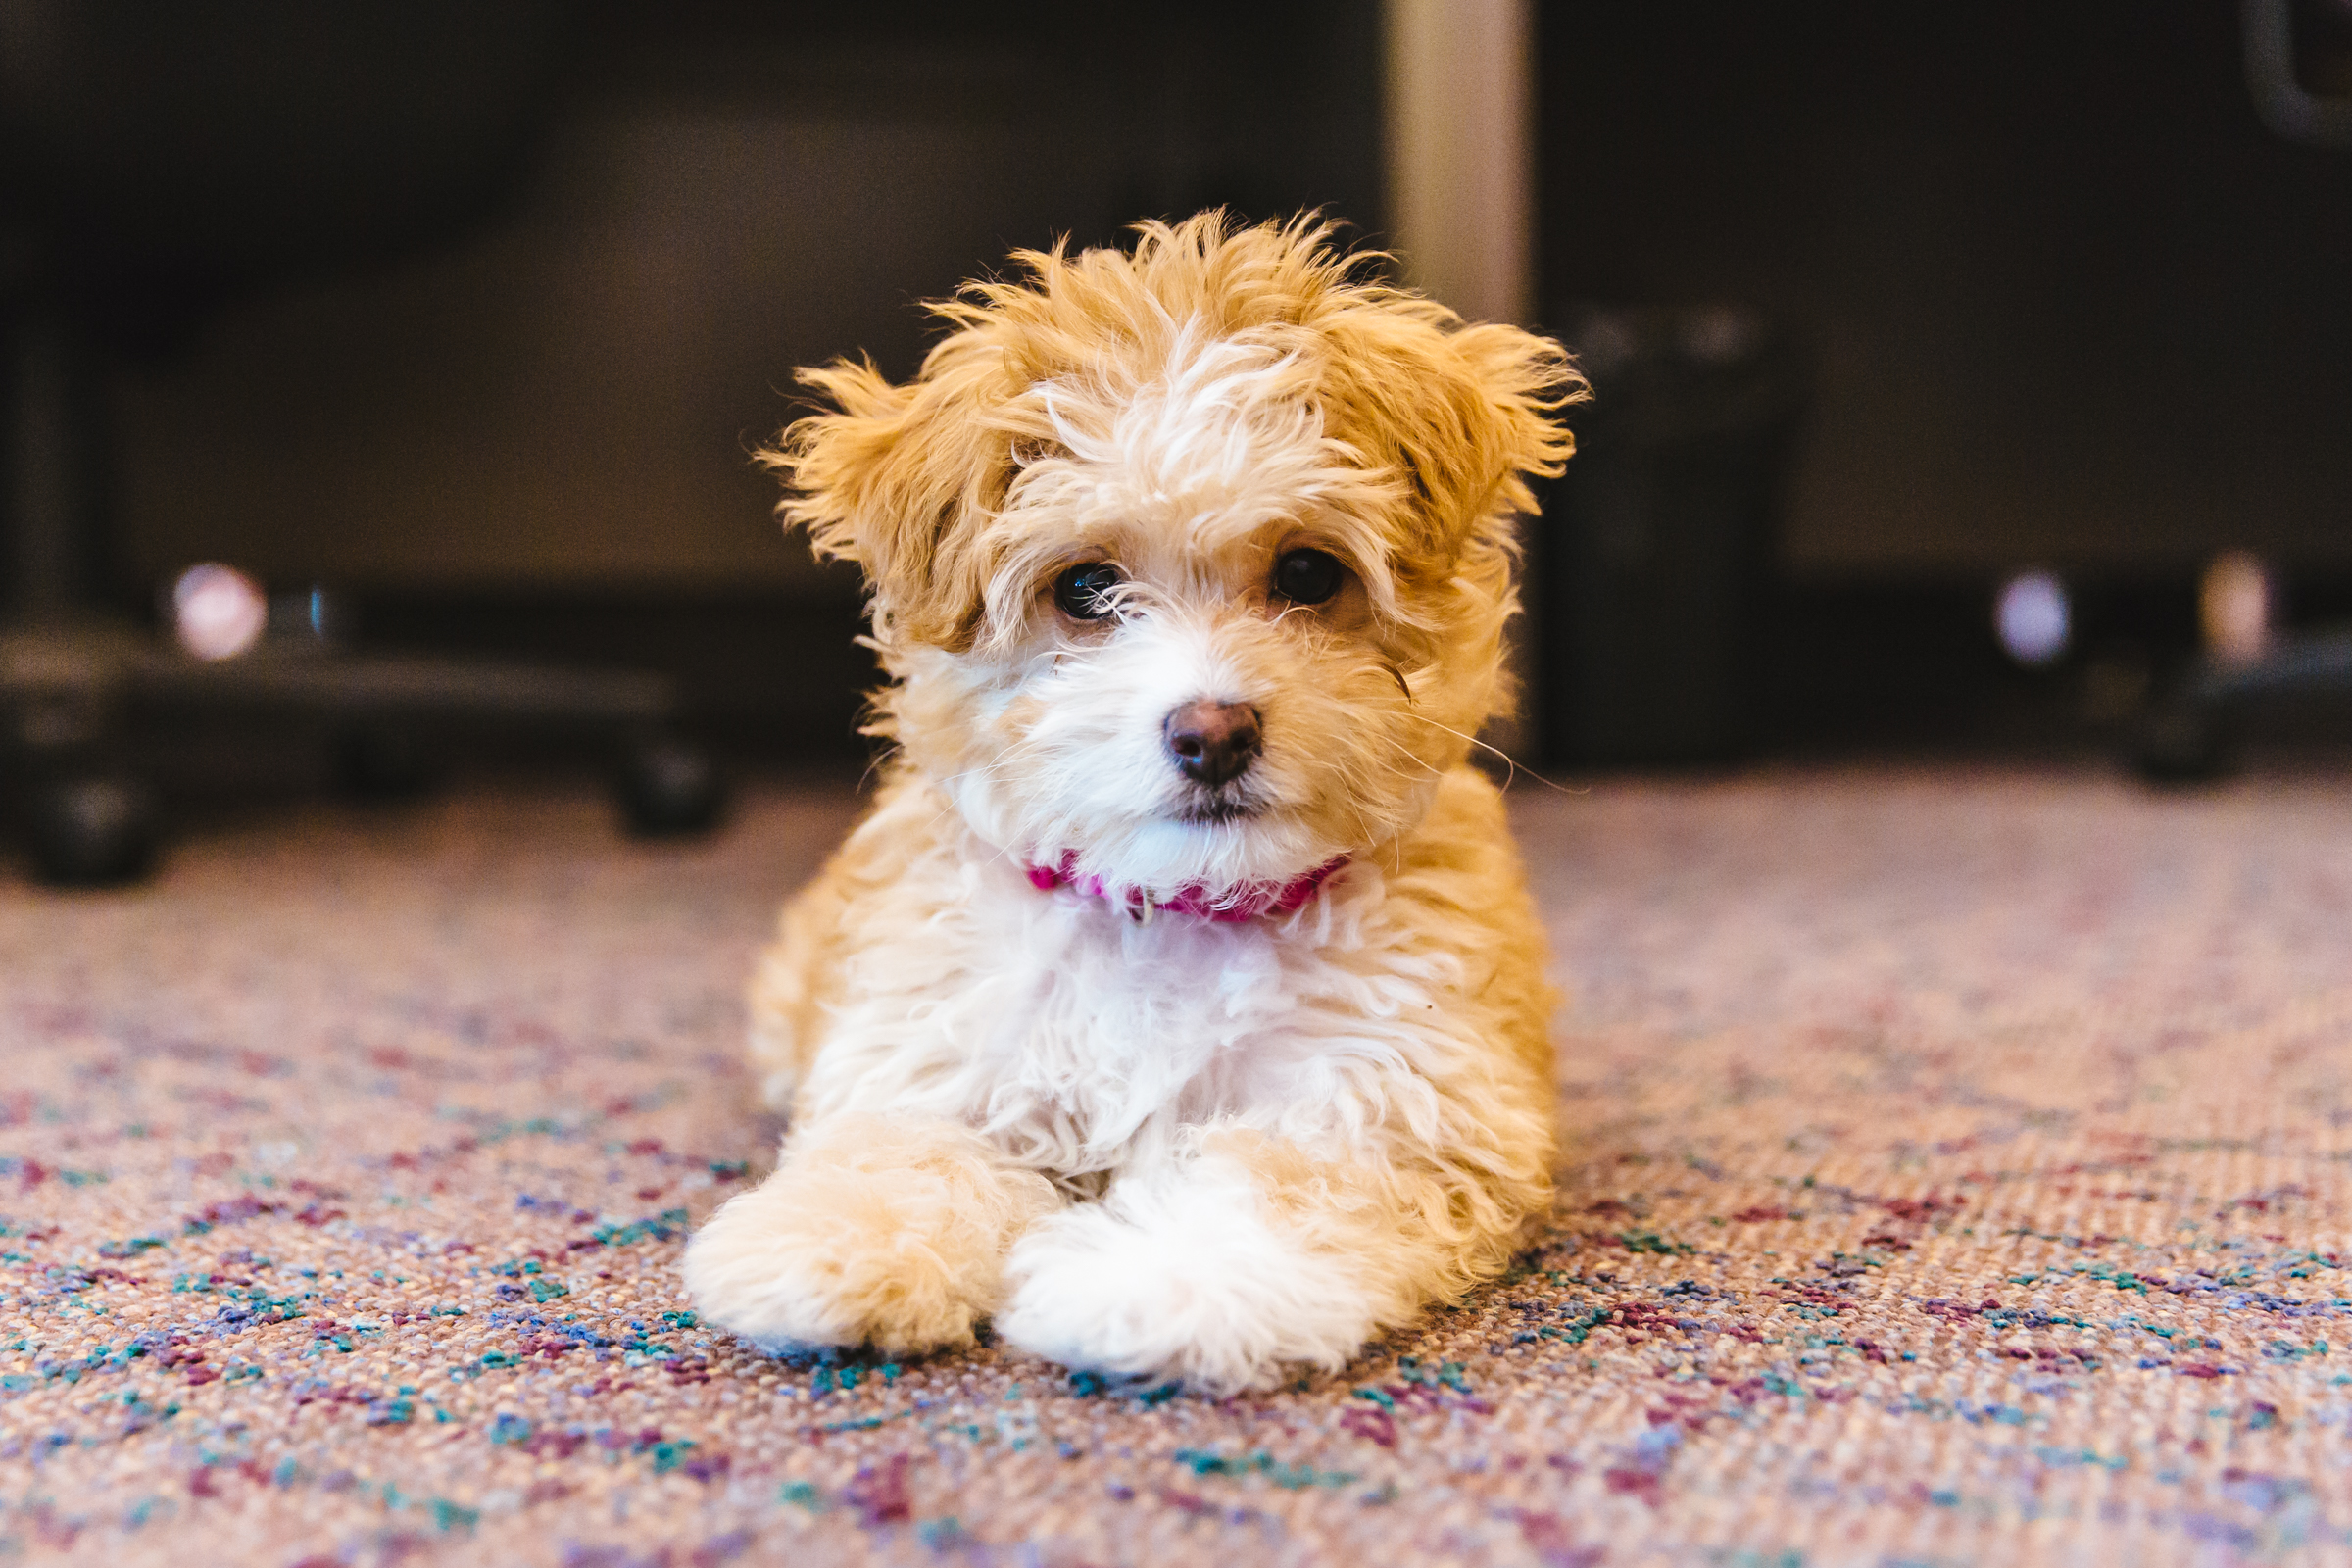 Meet Willow the Maltipoo Chiweenie Mix. Doesn't she look like the dreamiest little fluff you've ever seen?! Well she is. Her puppy snuggles are out of this world. Willow is only four months old and is the baby of Nicole who works here at KOMO! Nicole adopted Willow from a local breeder here in Seattle. Willow loves going for walks, picking up leaves to carry around, the beach, digging in the sand, playing with her older sister Maggie, her toys, playing fetch, cuddling, meeting new people and dogs, treats, and peanut butter! She dislikes baths (but loves hair dyers), and hates it when Maggie doesn't want to play.  The Seattle RUFFined Spotlight is a weekly profile of local pets living and loving life in the PNW. If you or someone you know has a pet you'd like featured, email us at hello@seattlerefined.com or tag #SeattleRUFFined and your furbaby could be the next spotlighted! (Image: Sunita Martini / Seattle Refined)